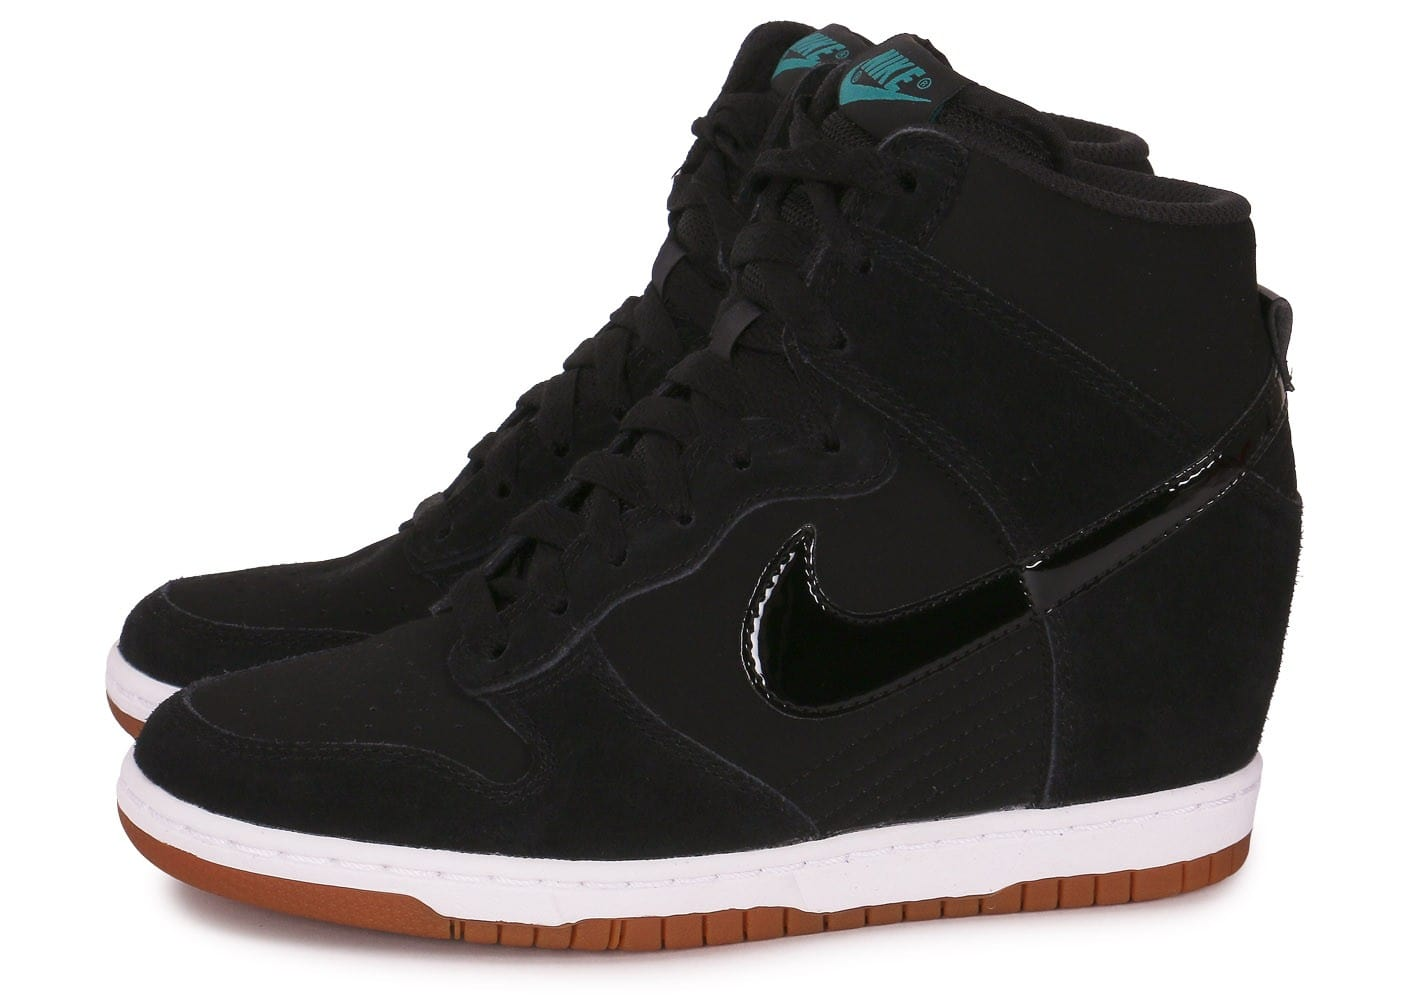 Nike Dunk Sky Hi Essential Black Gum Chaussures Chaussures